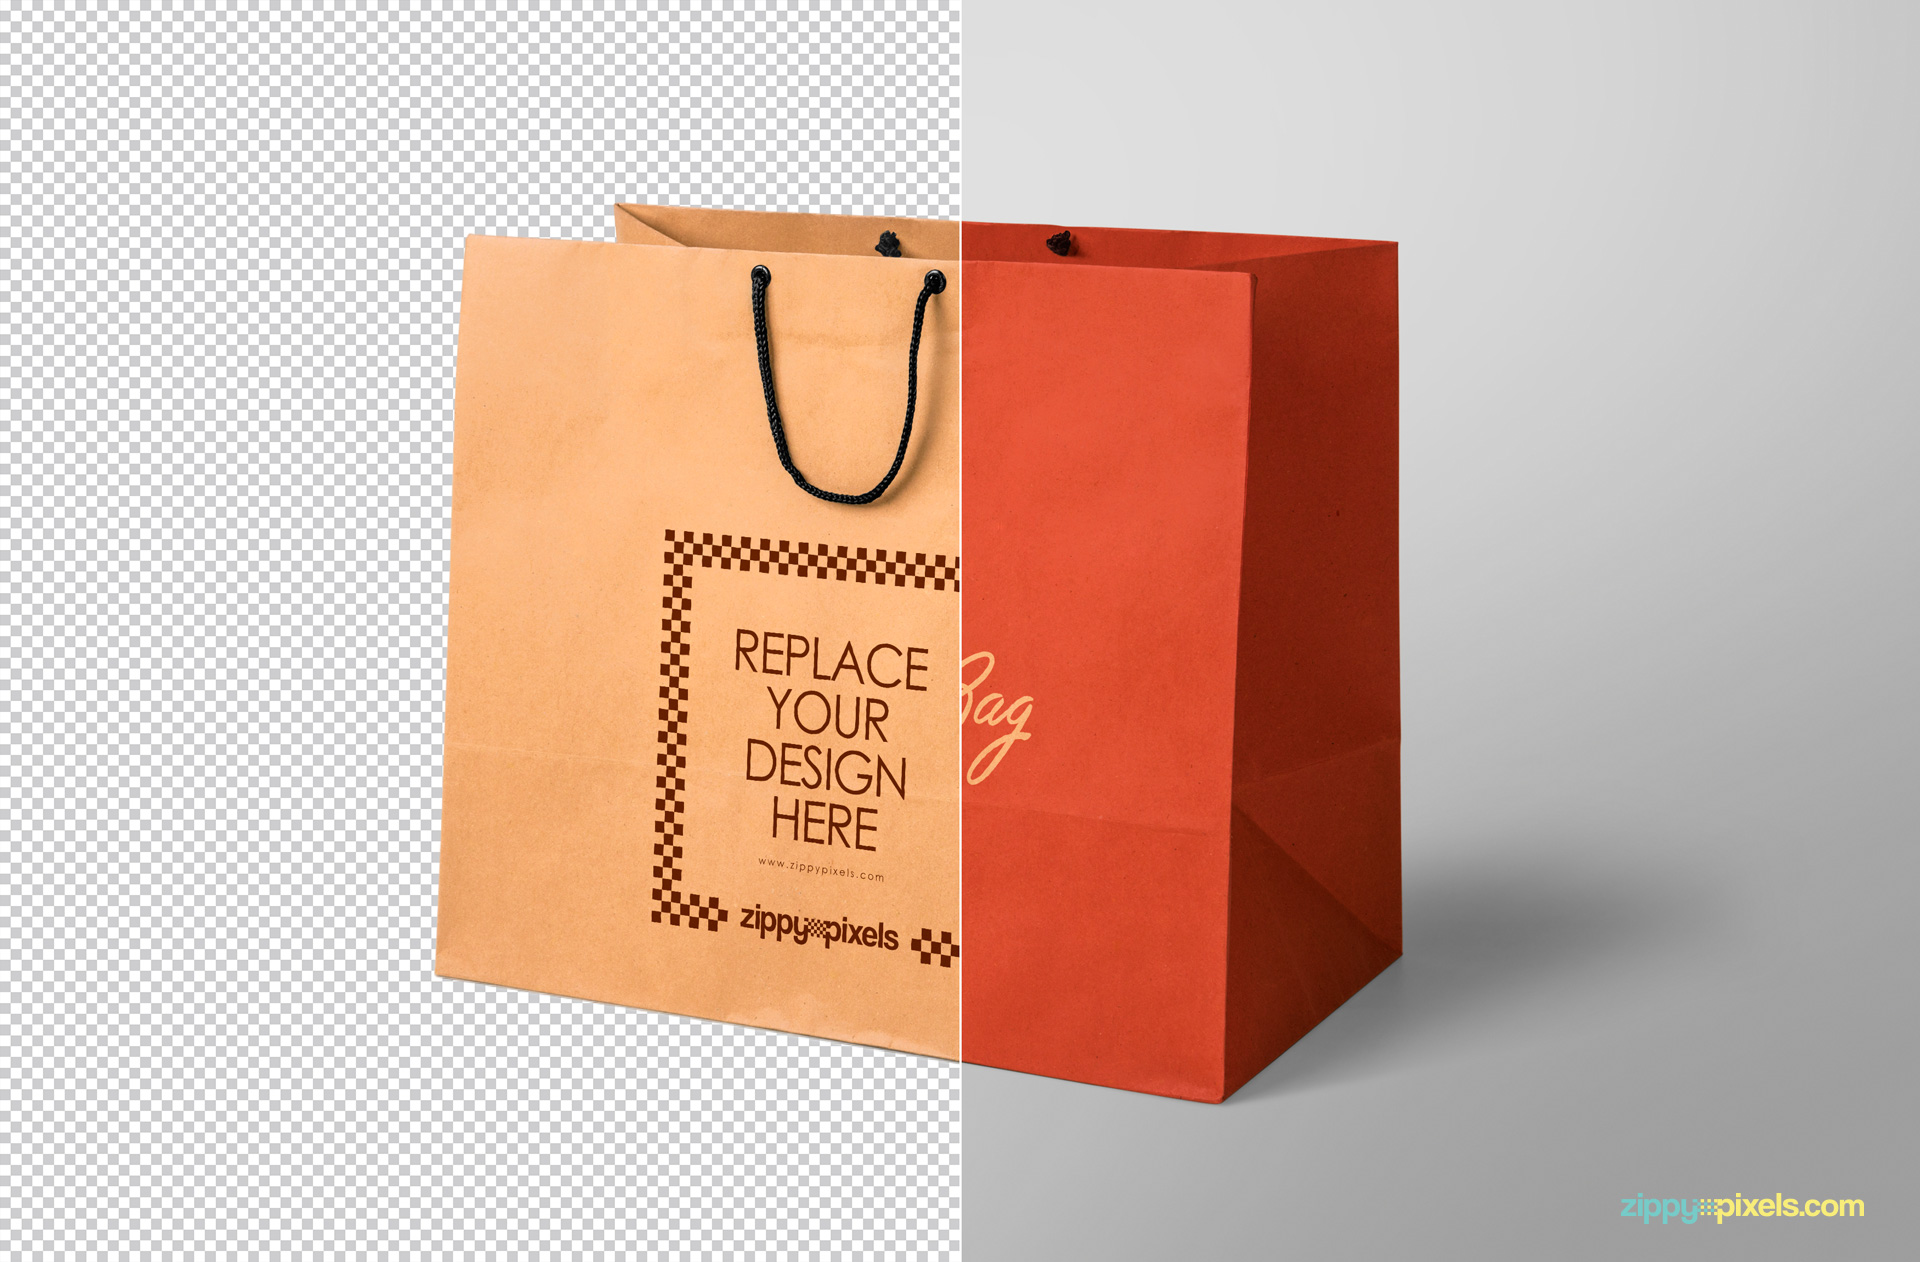 ready to use shooping bag design mockup